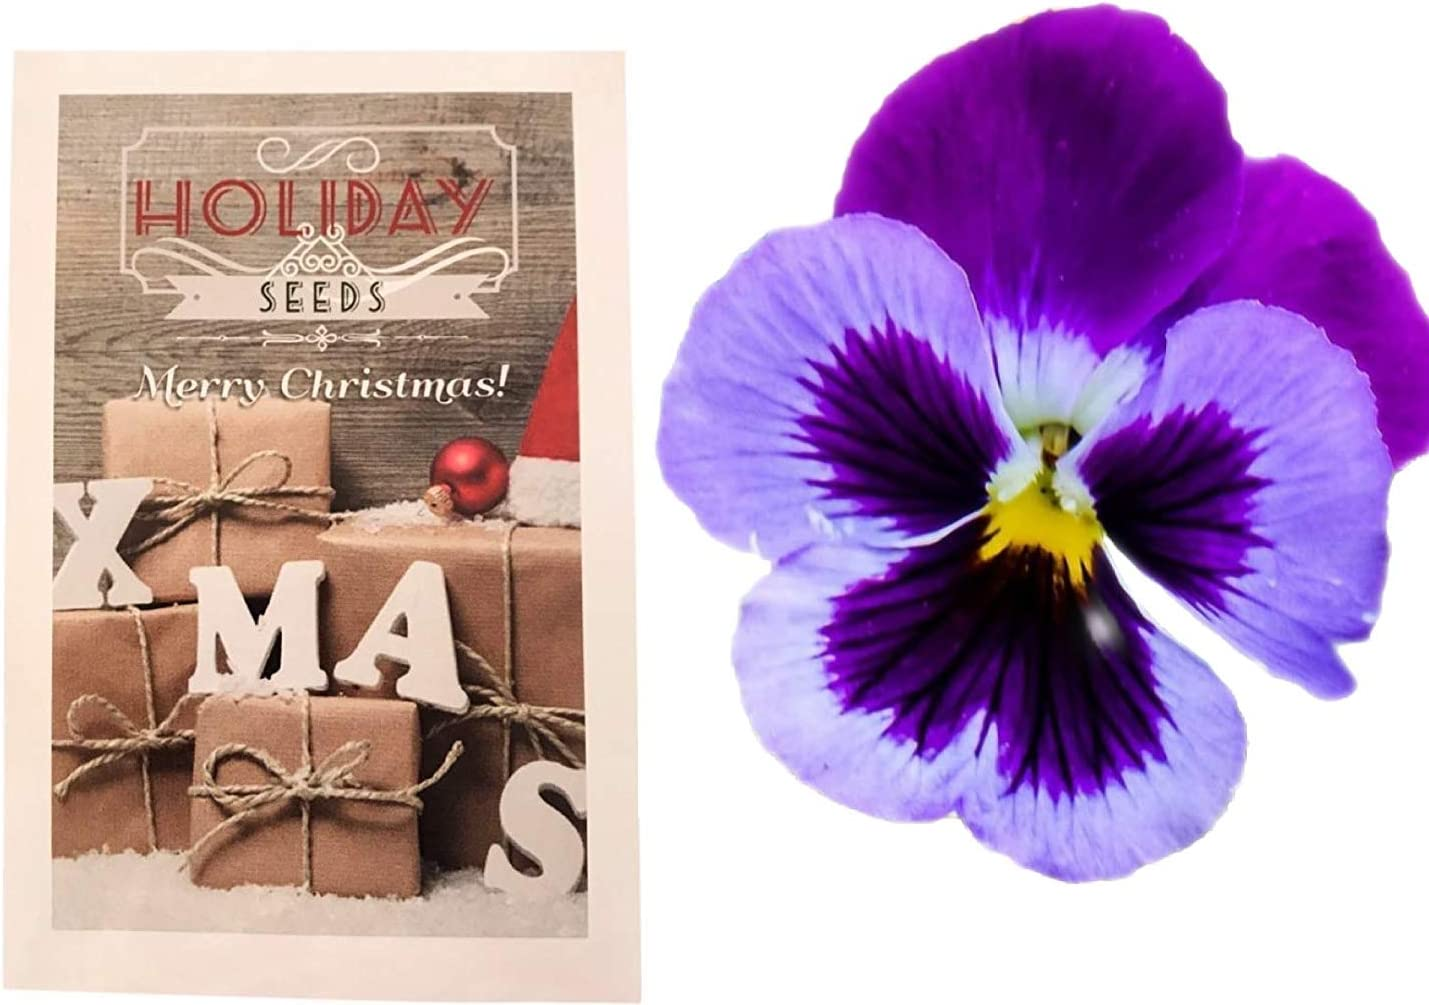 Cherry Pirouette Petunia Stocking Stuffers Holiday Seeds UPC 600188194760 Holiday Themed Seed Packets